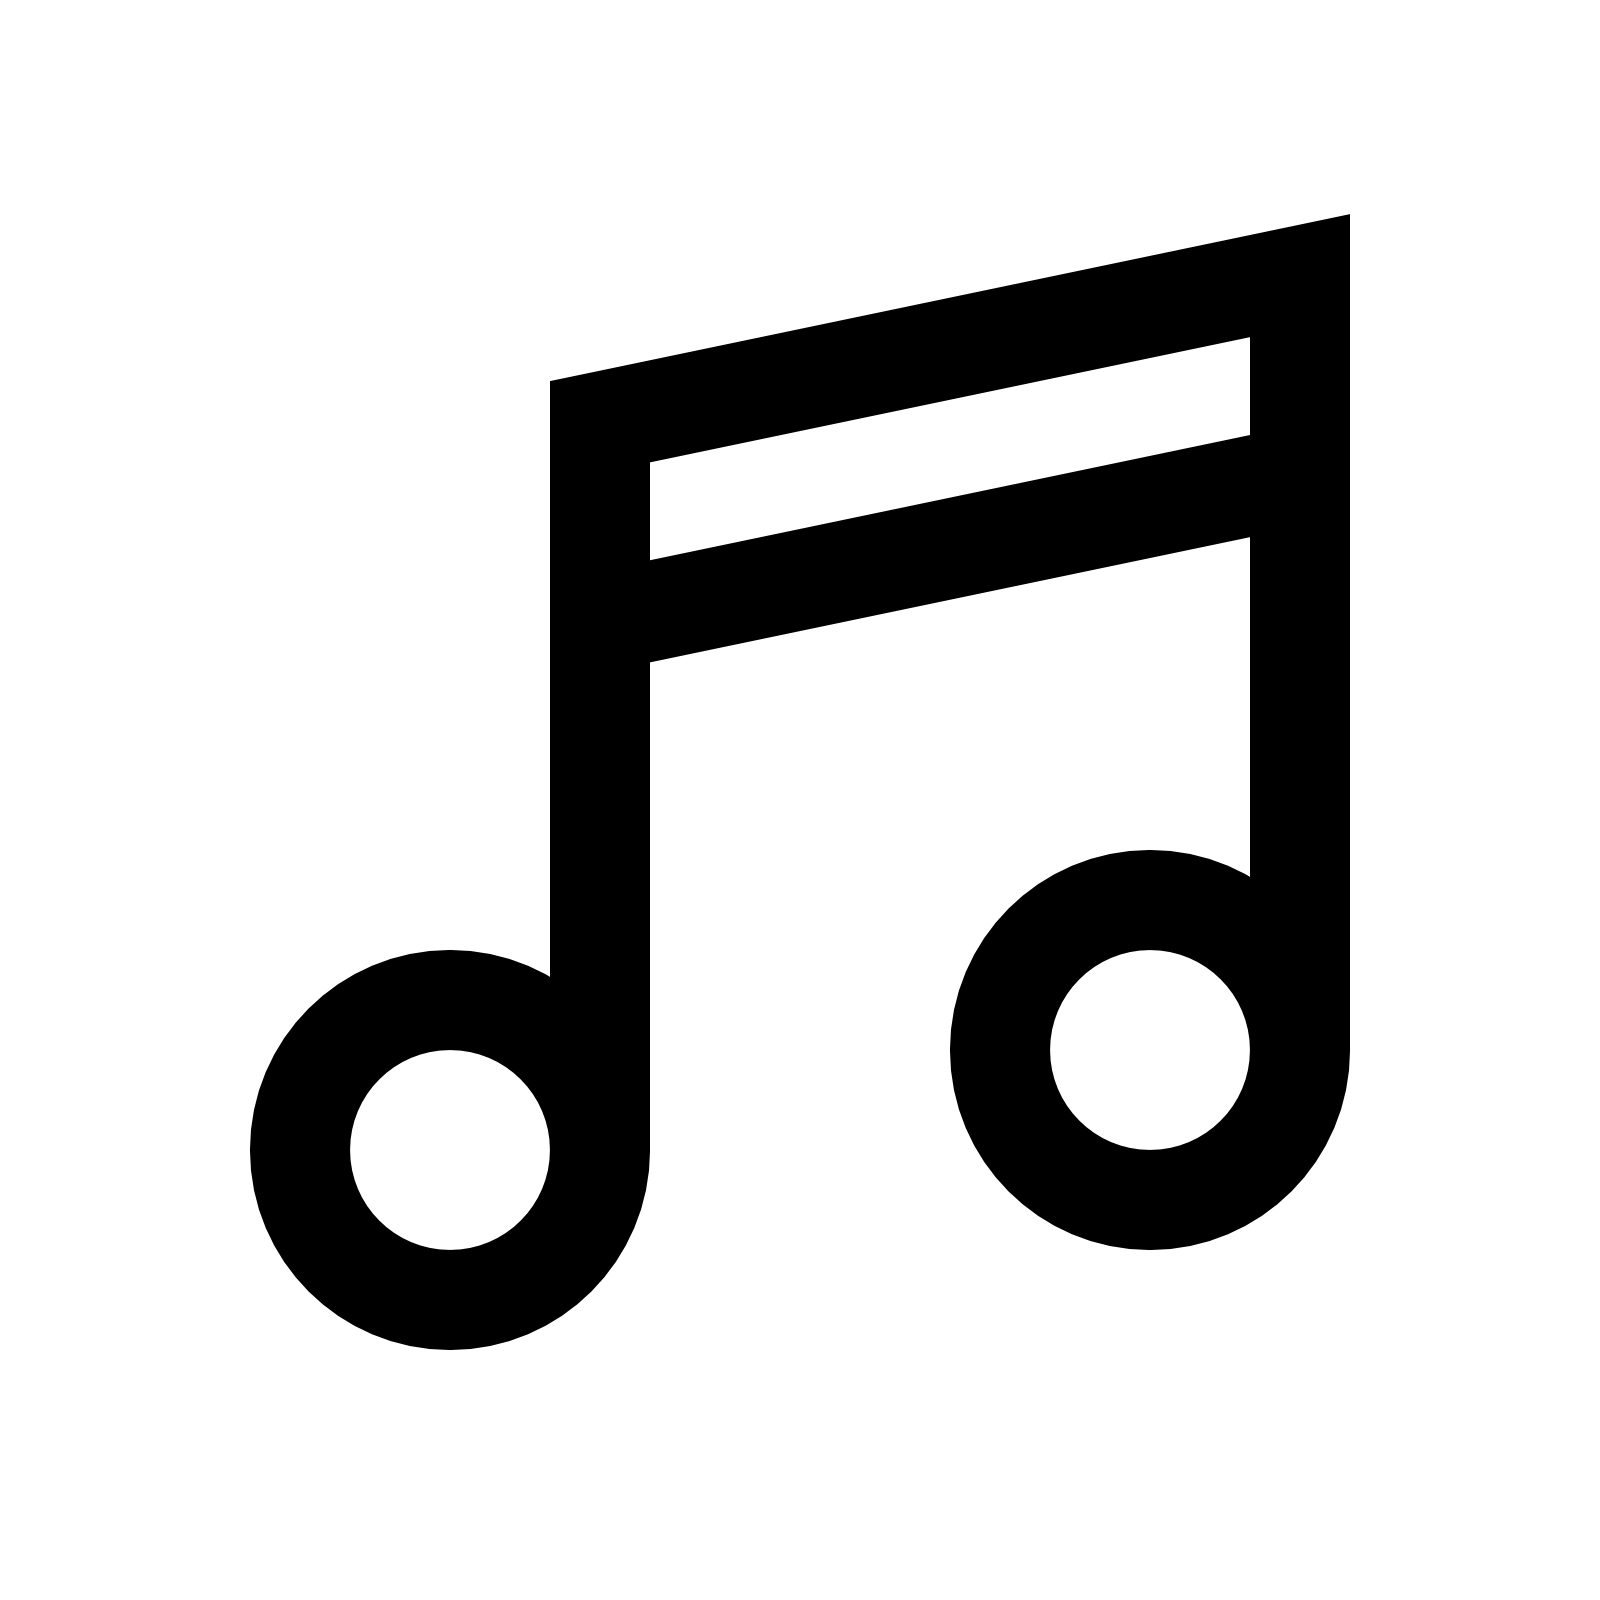 Pictures of music notes and symbols free download best pictures of 1600x1600 music notes clipart one biocorpaavc Image collections